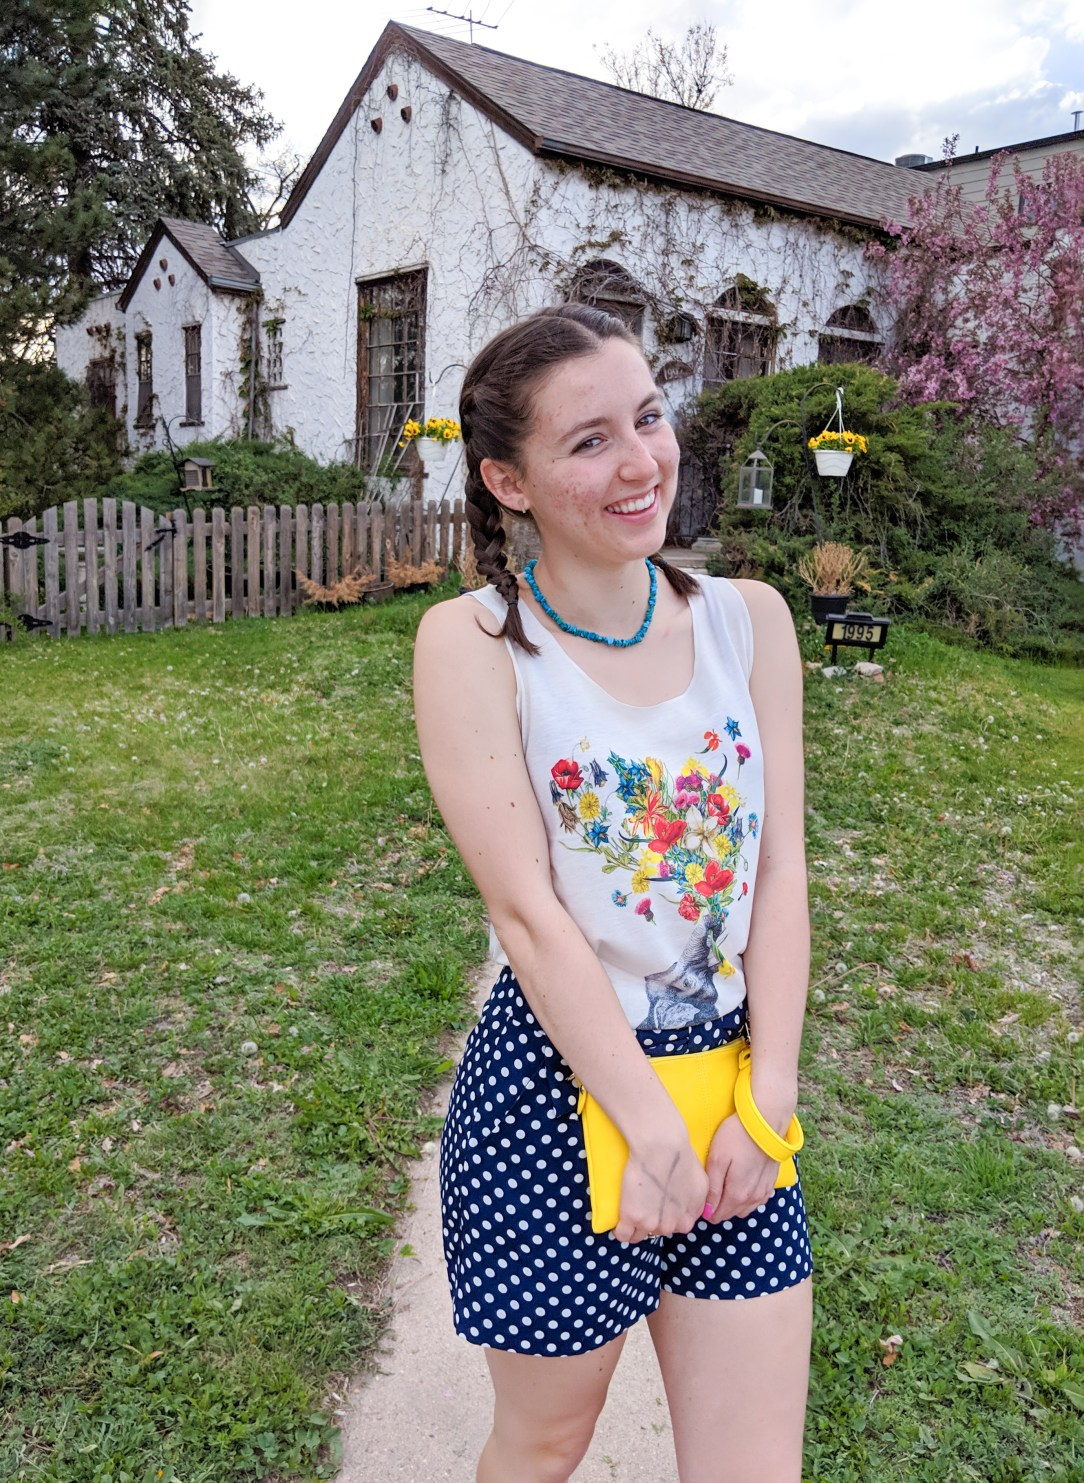 floral graphic tank top, yellow clutch, polka dot shorts, French braids